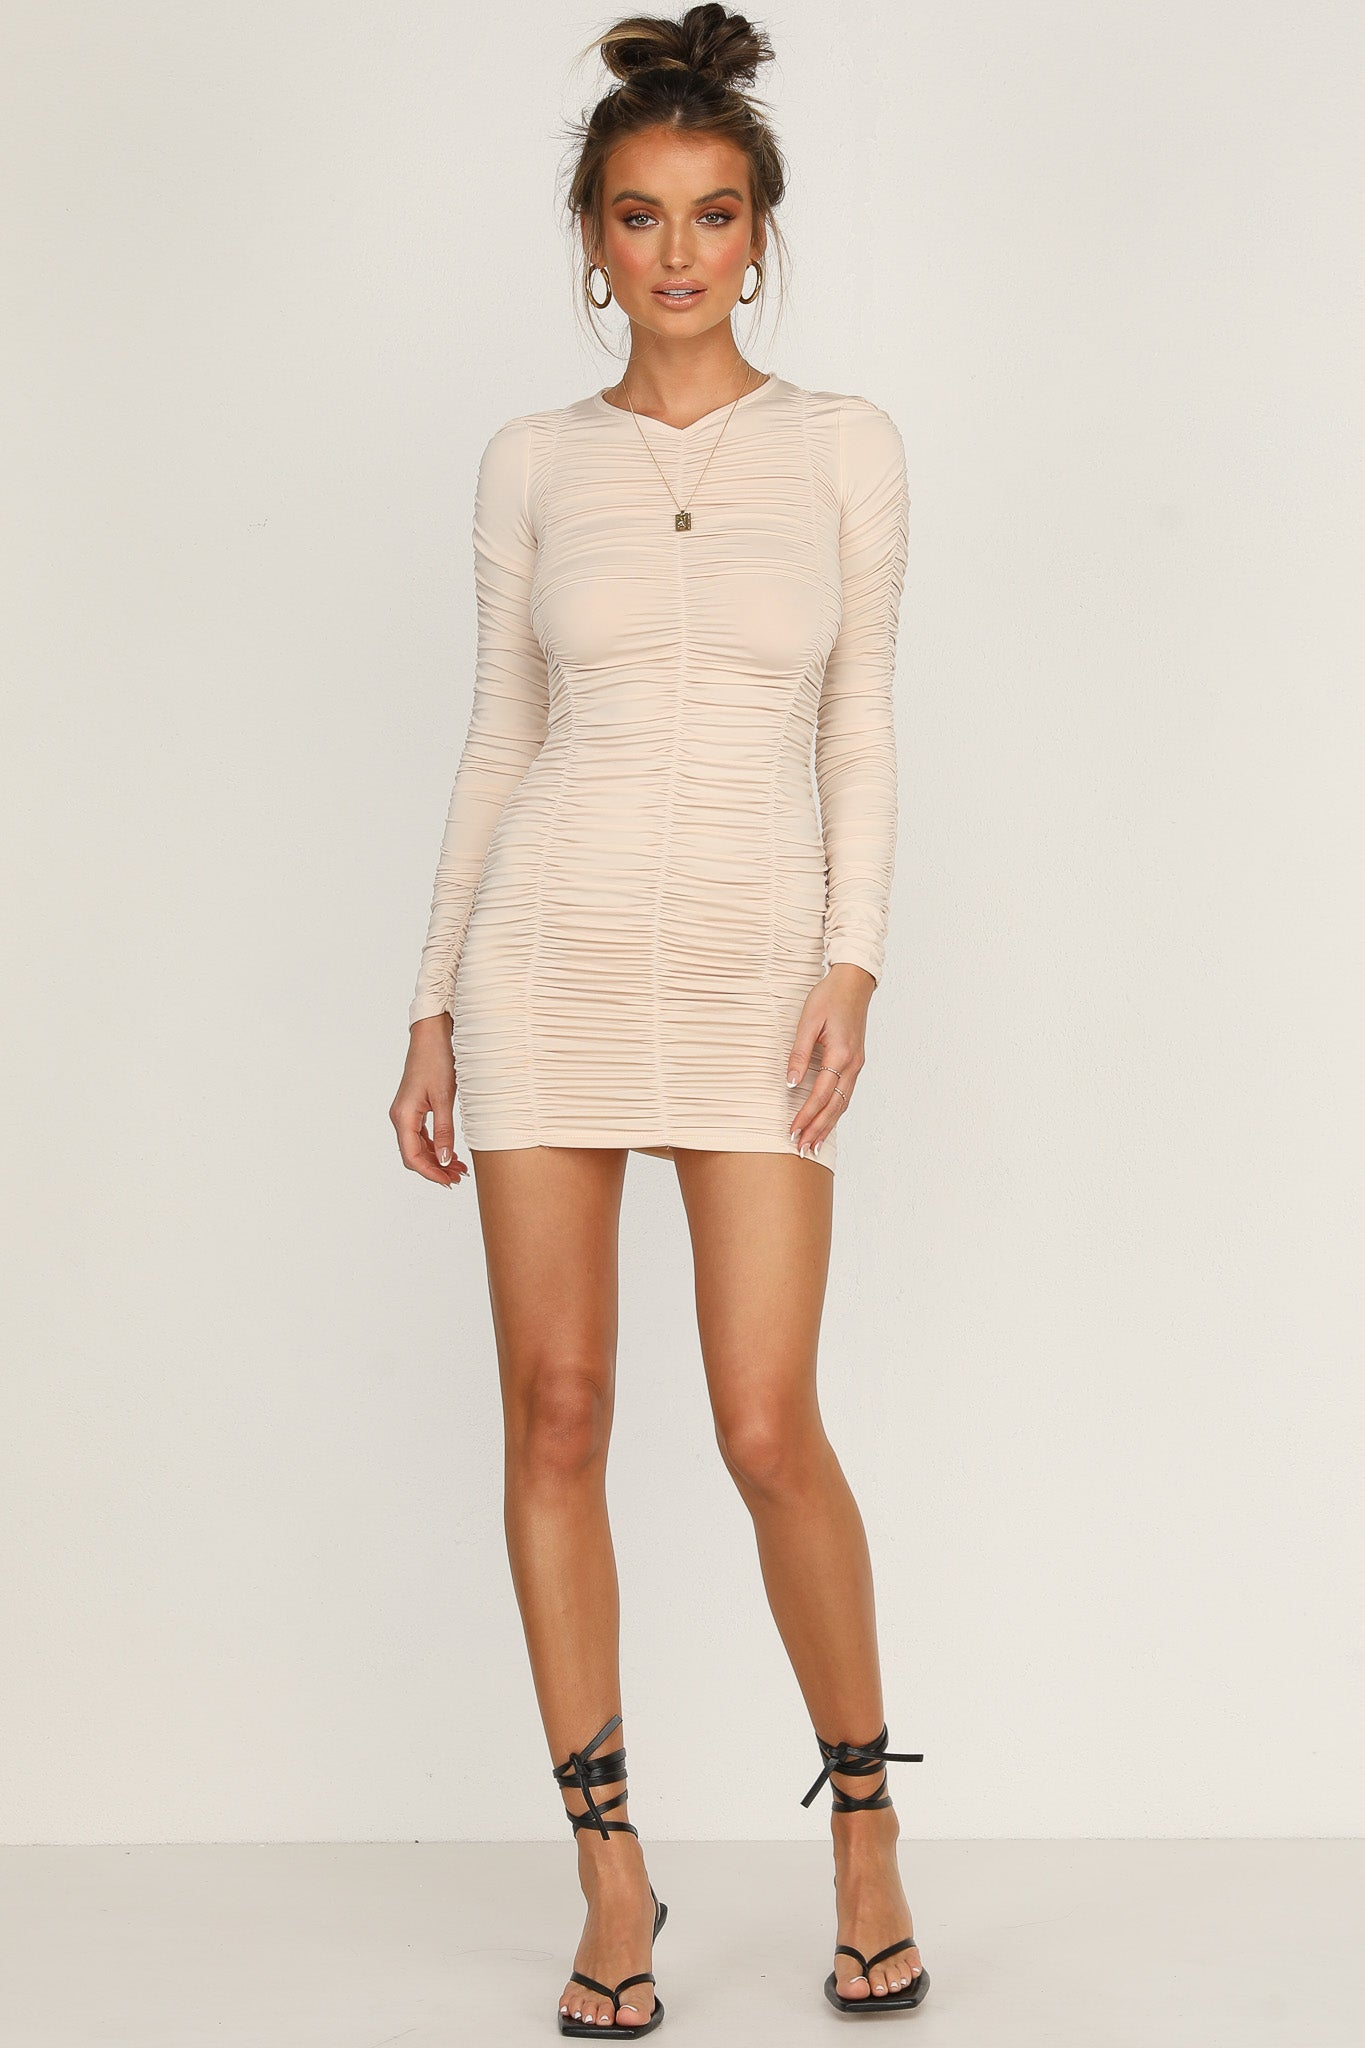 Muse Dress (Beige)